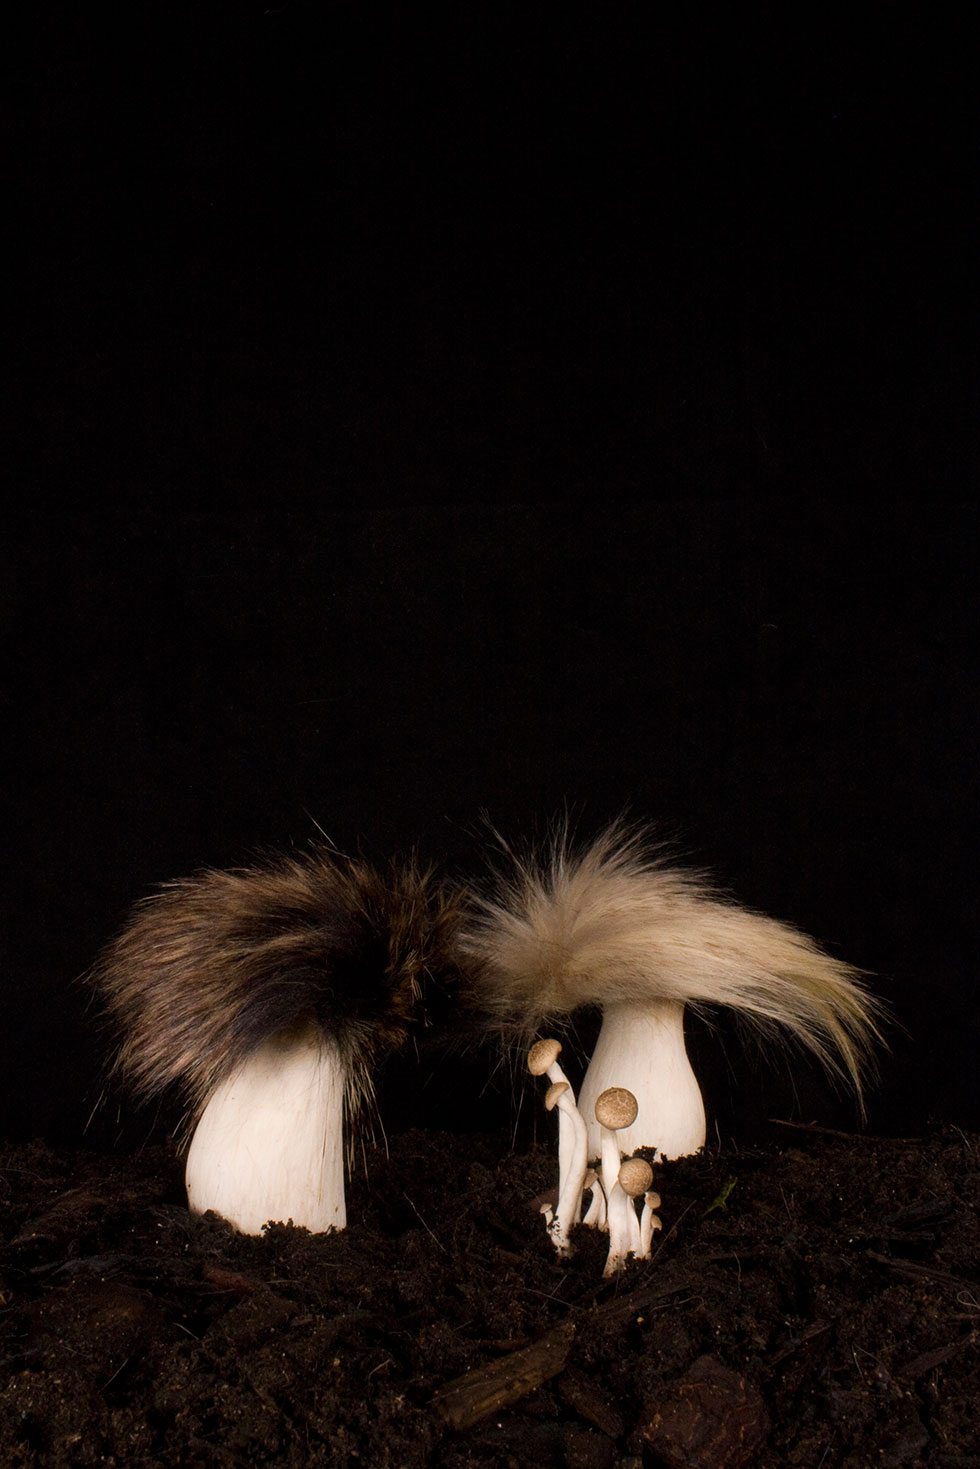 Racoon and Linx Fungi, Carole Collet, 2014